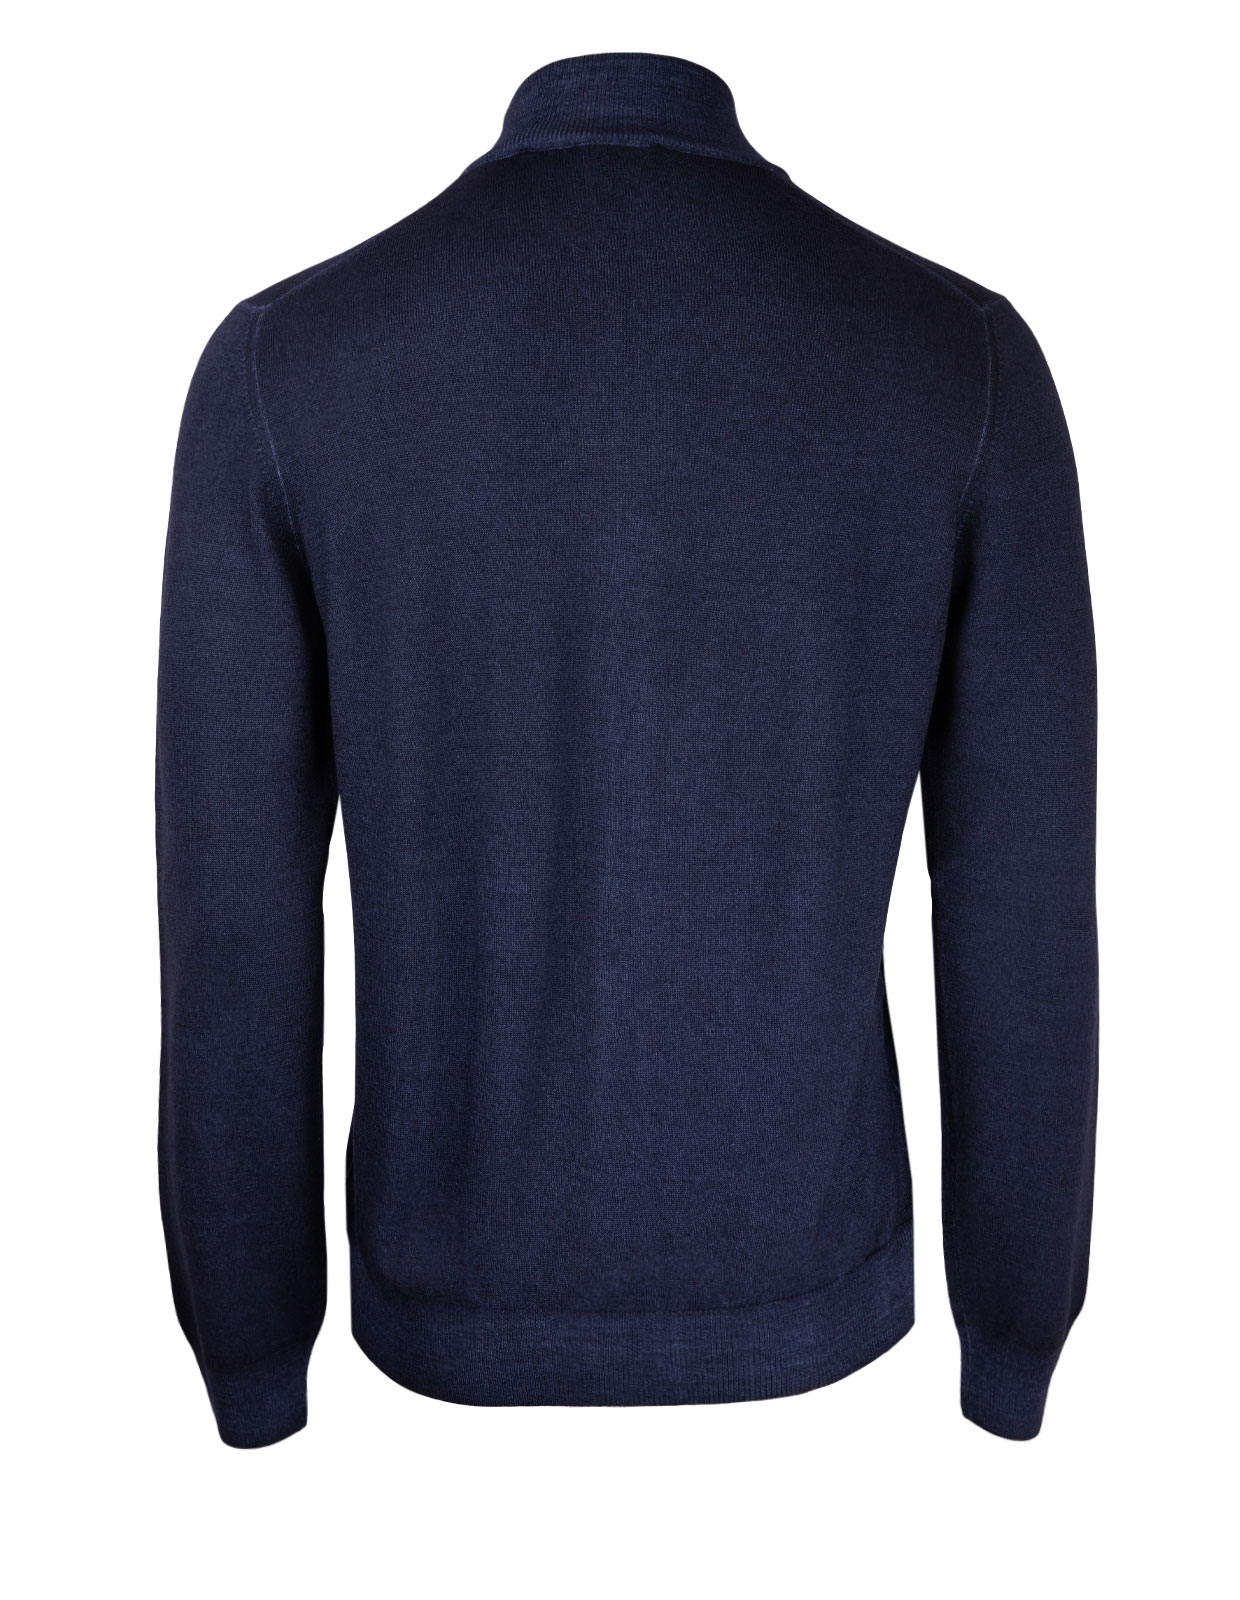 Full Zip Vintage Merino Navy